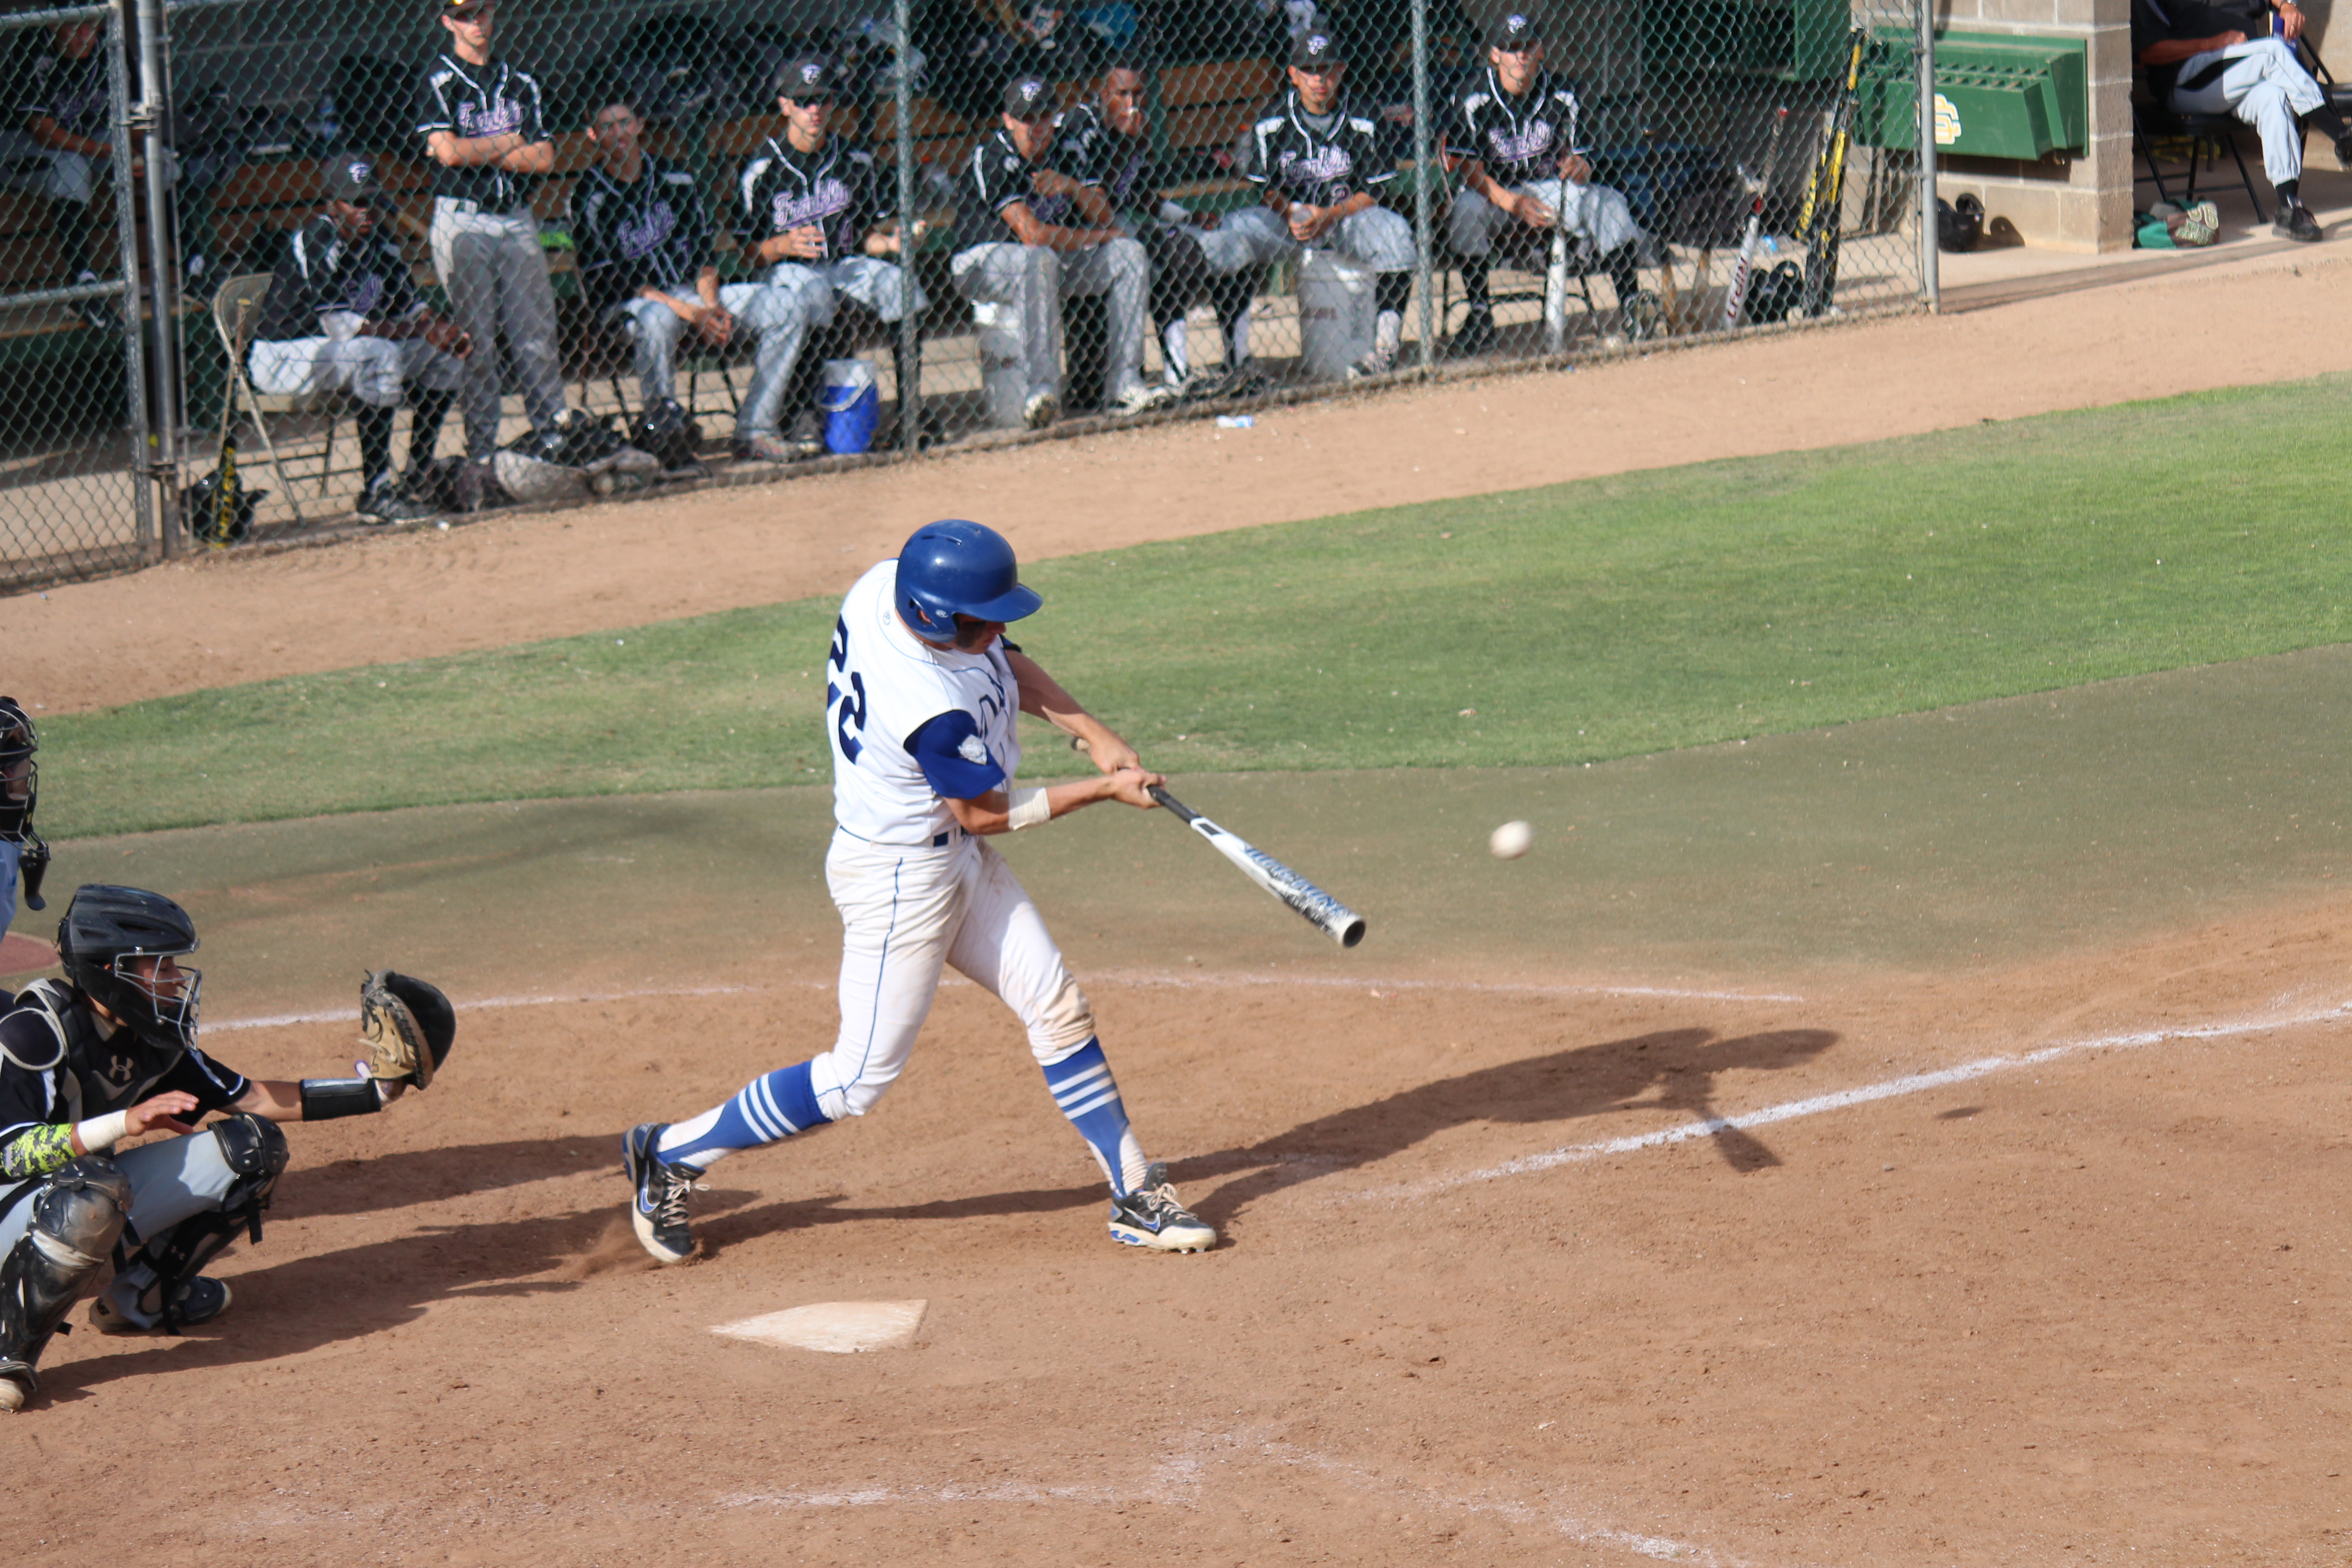 Senior John Ariola strokes a hit in Satuday's matchup against Franklin High School. Ariola went 2-4 in DHS' game against Rocklin.